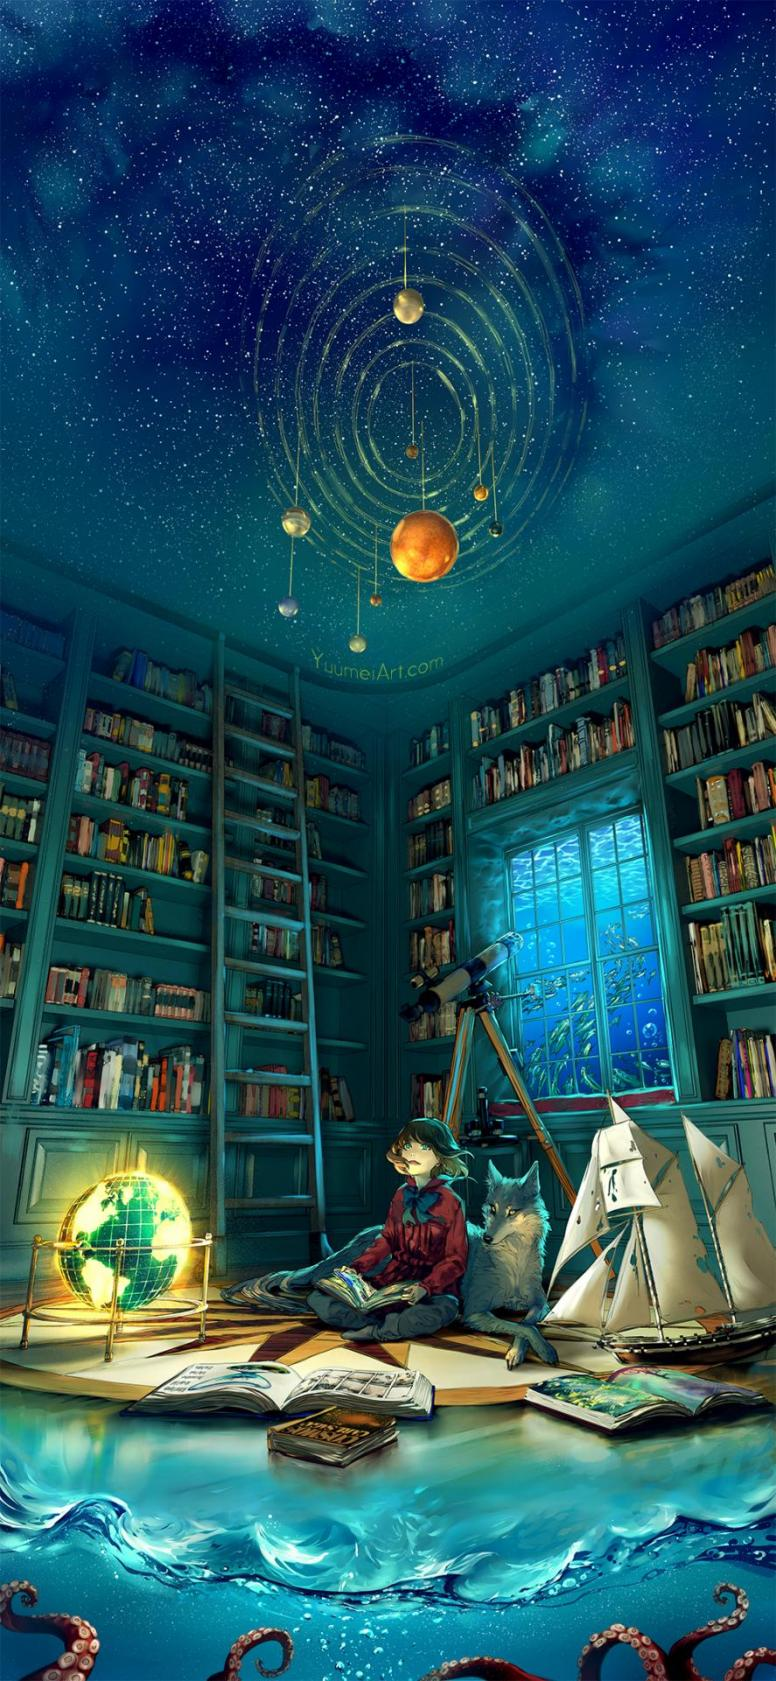 Book room2